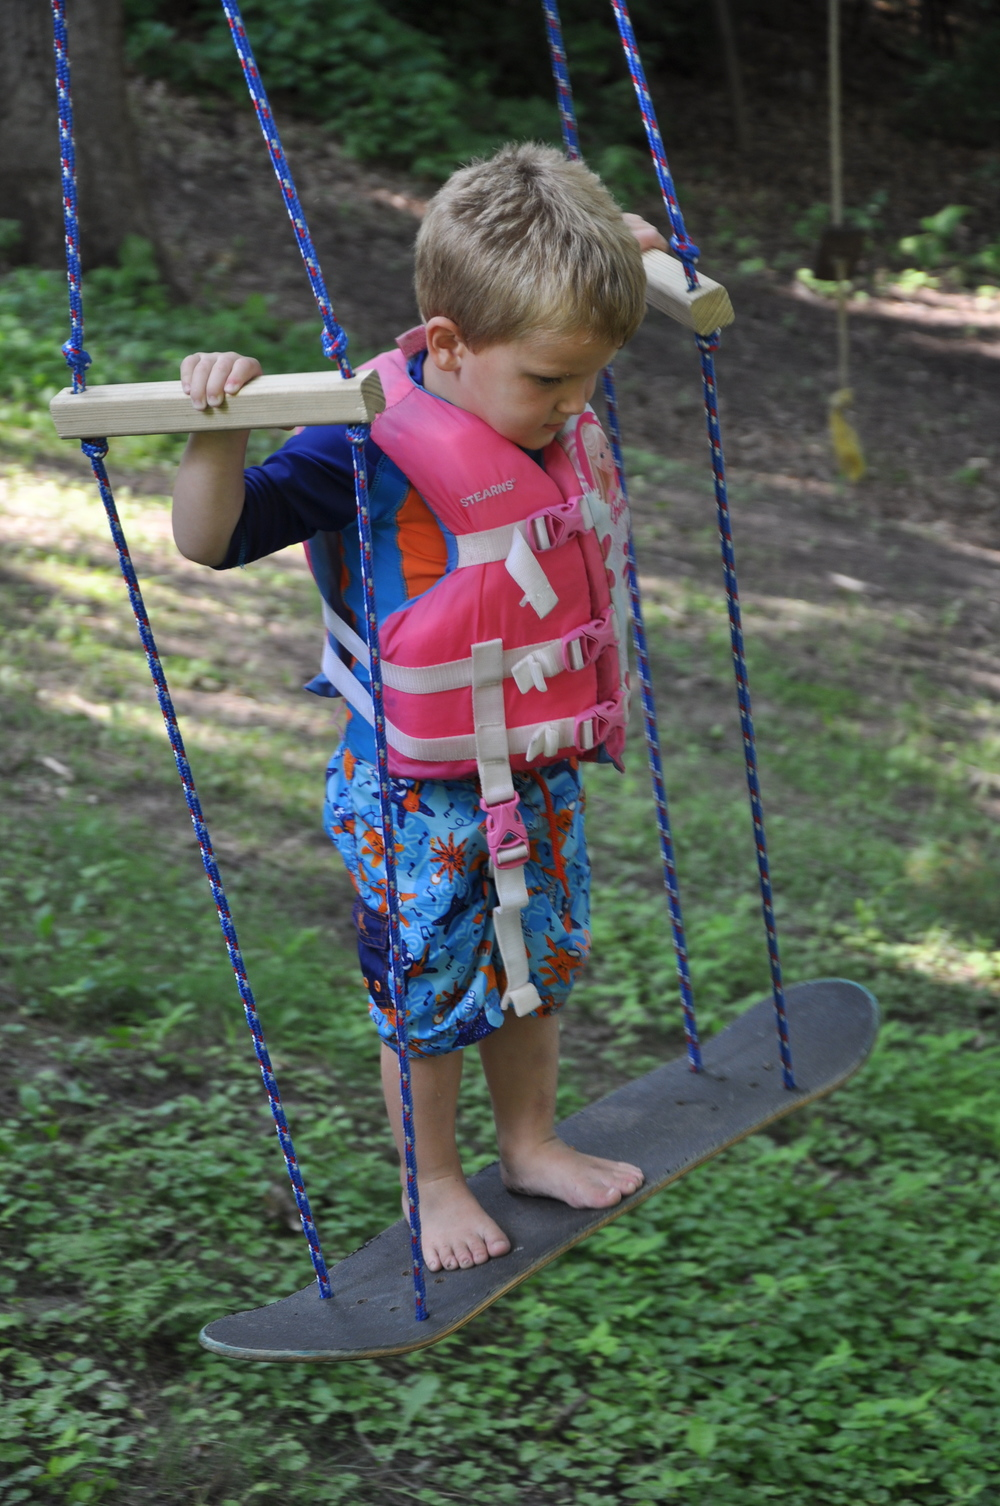 OK I know someone will ask why Johnnie has a lifejacket on. He came from the pool to try the new swing.